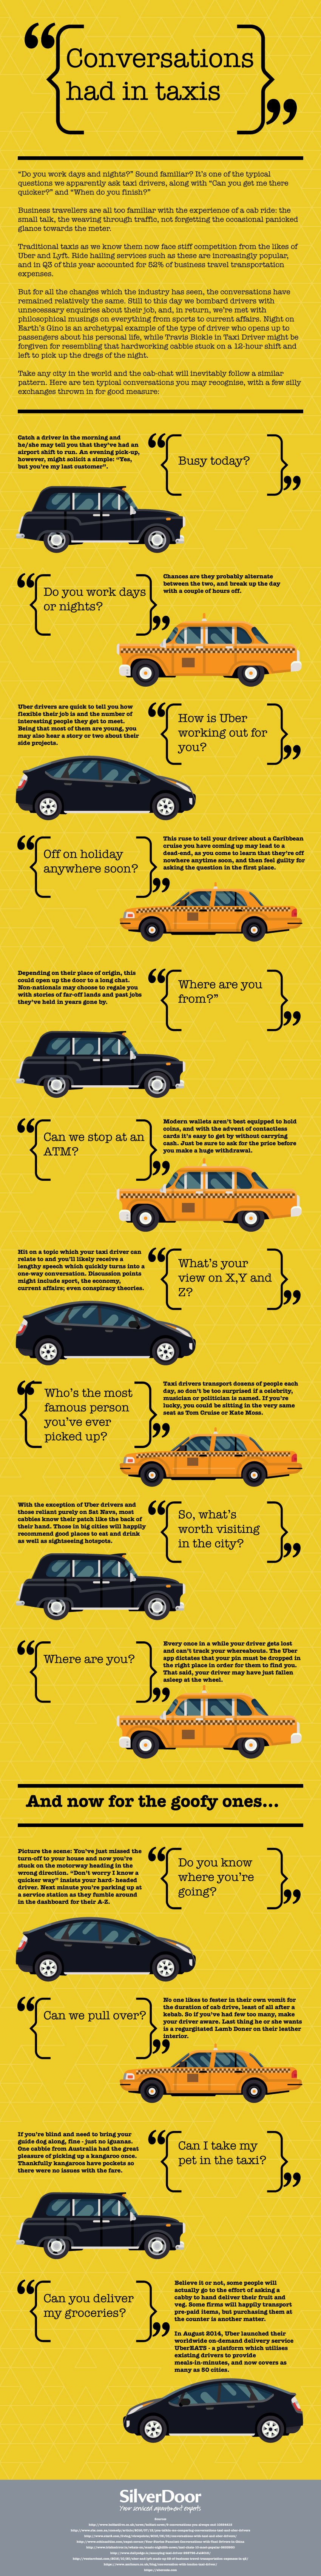 Conversations-had-in-taxis